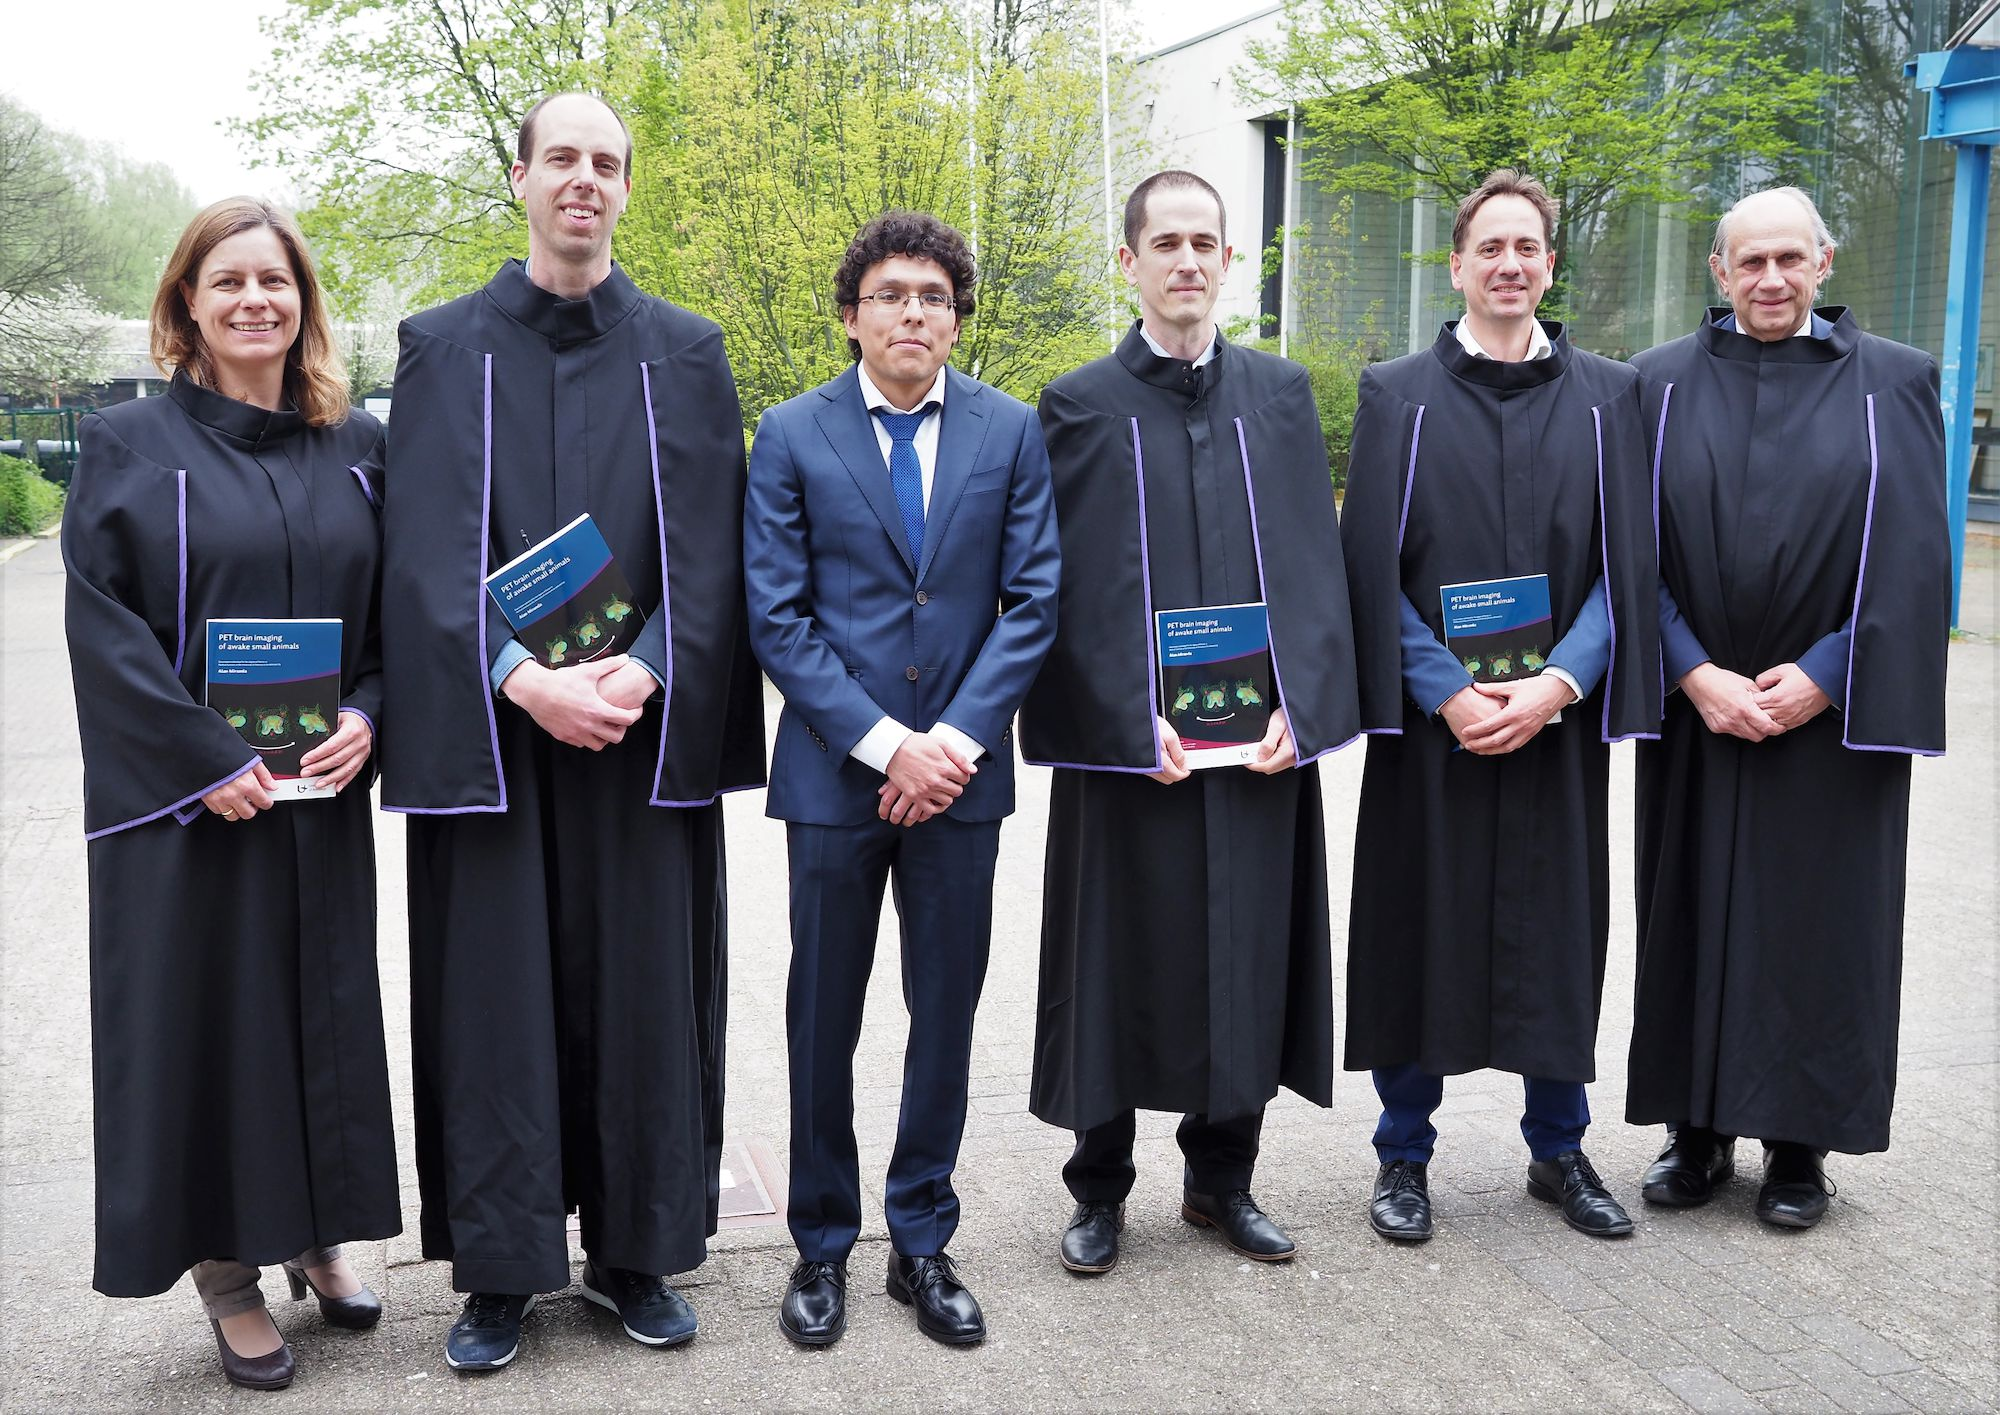 Doctoraatsverdediging Alan Miranda - 17 april 2019